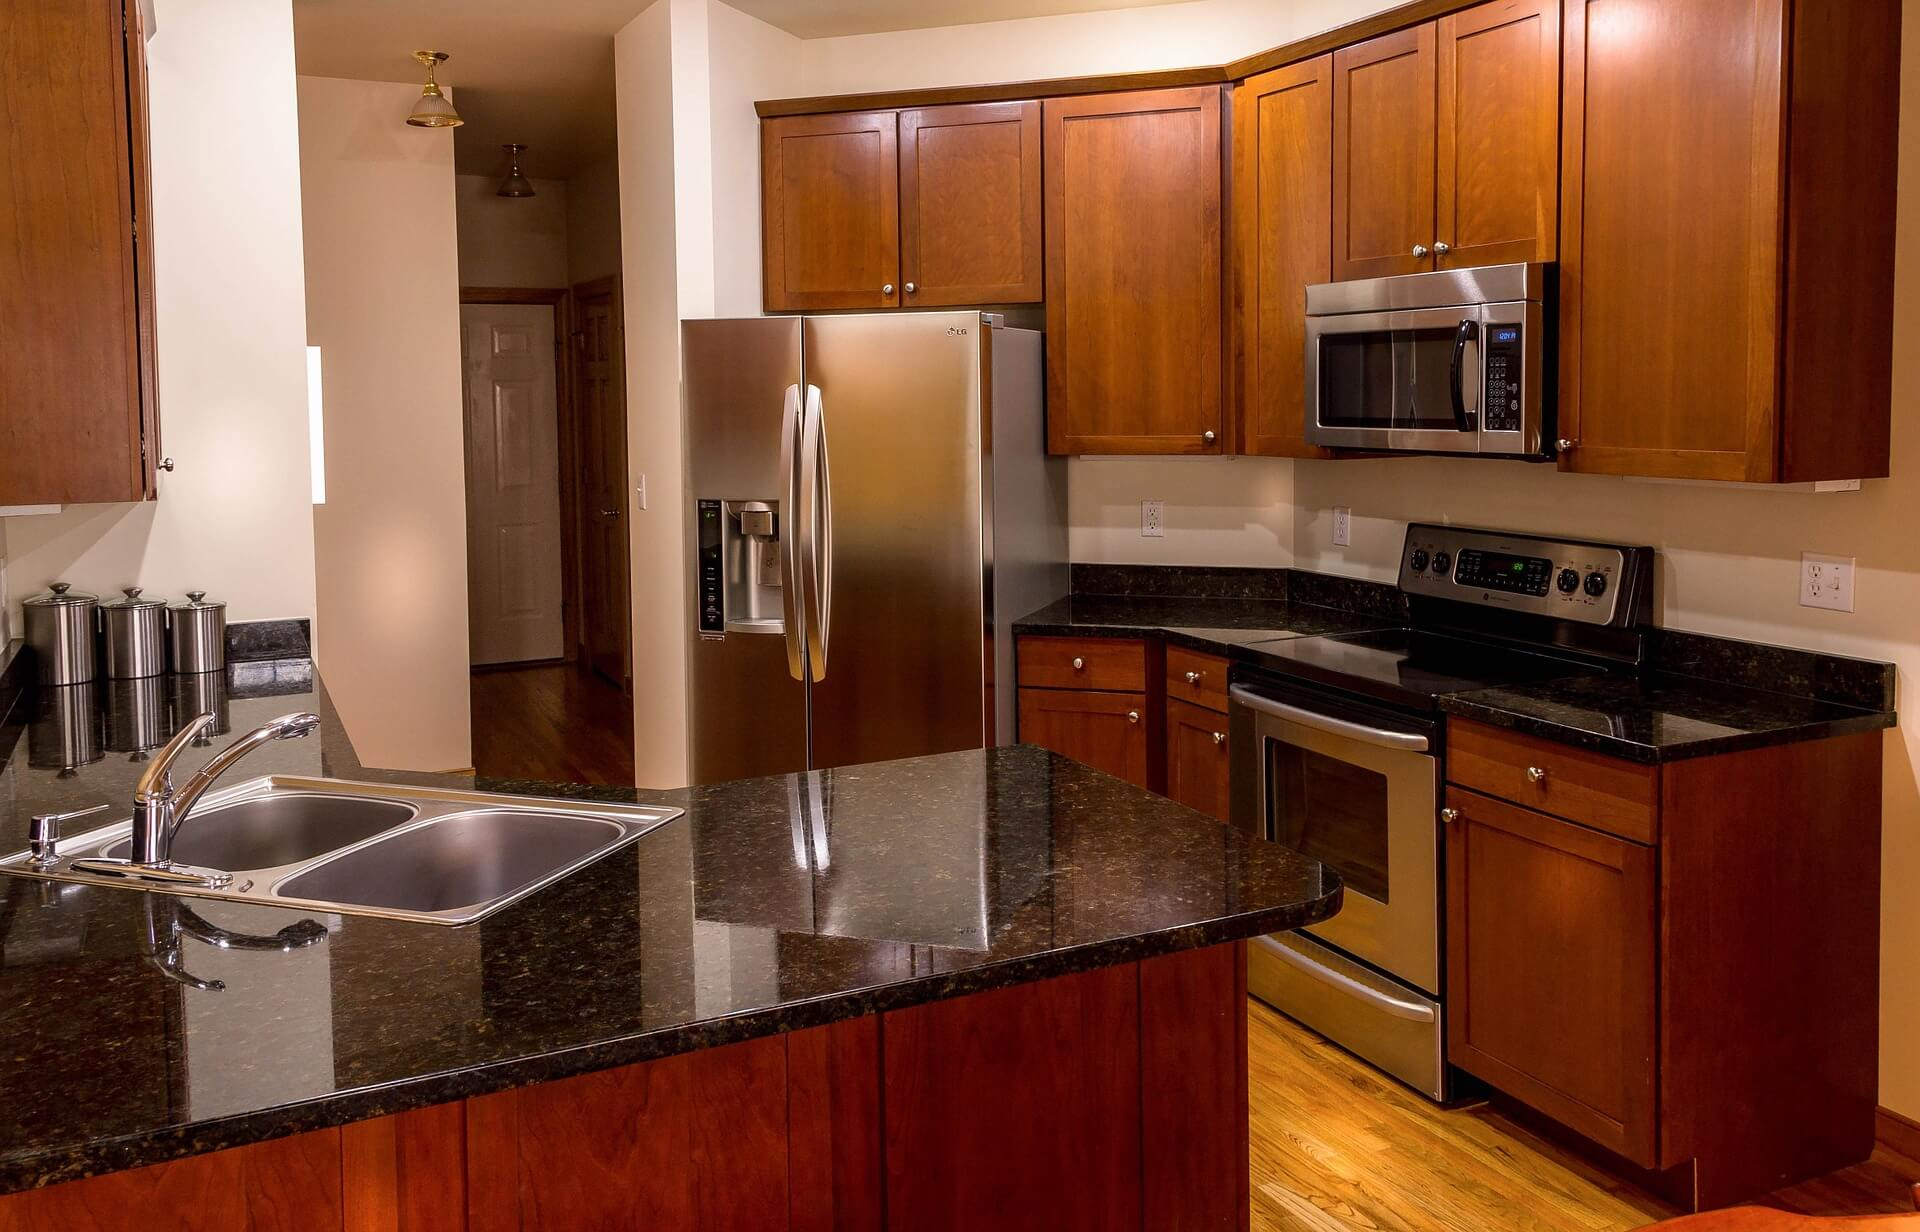 Granite Countertops - SoFlo Kitchen Remodeling & Custom Cabinet Installation - backsplashes, flooring, countertops